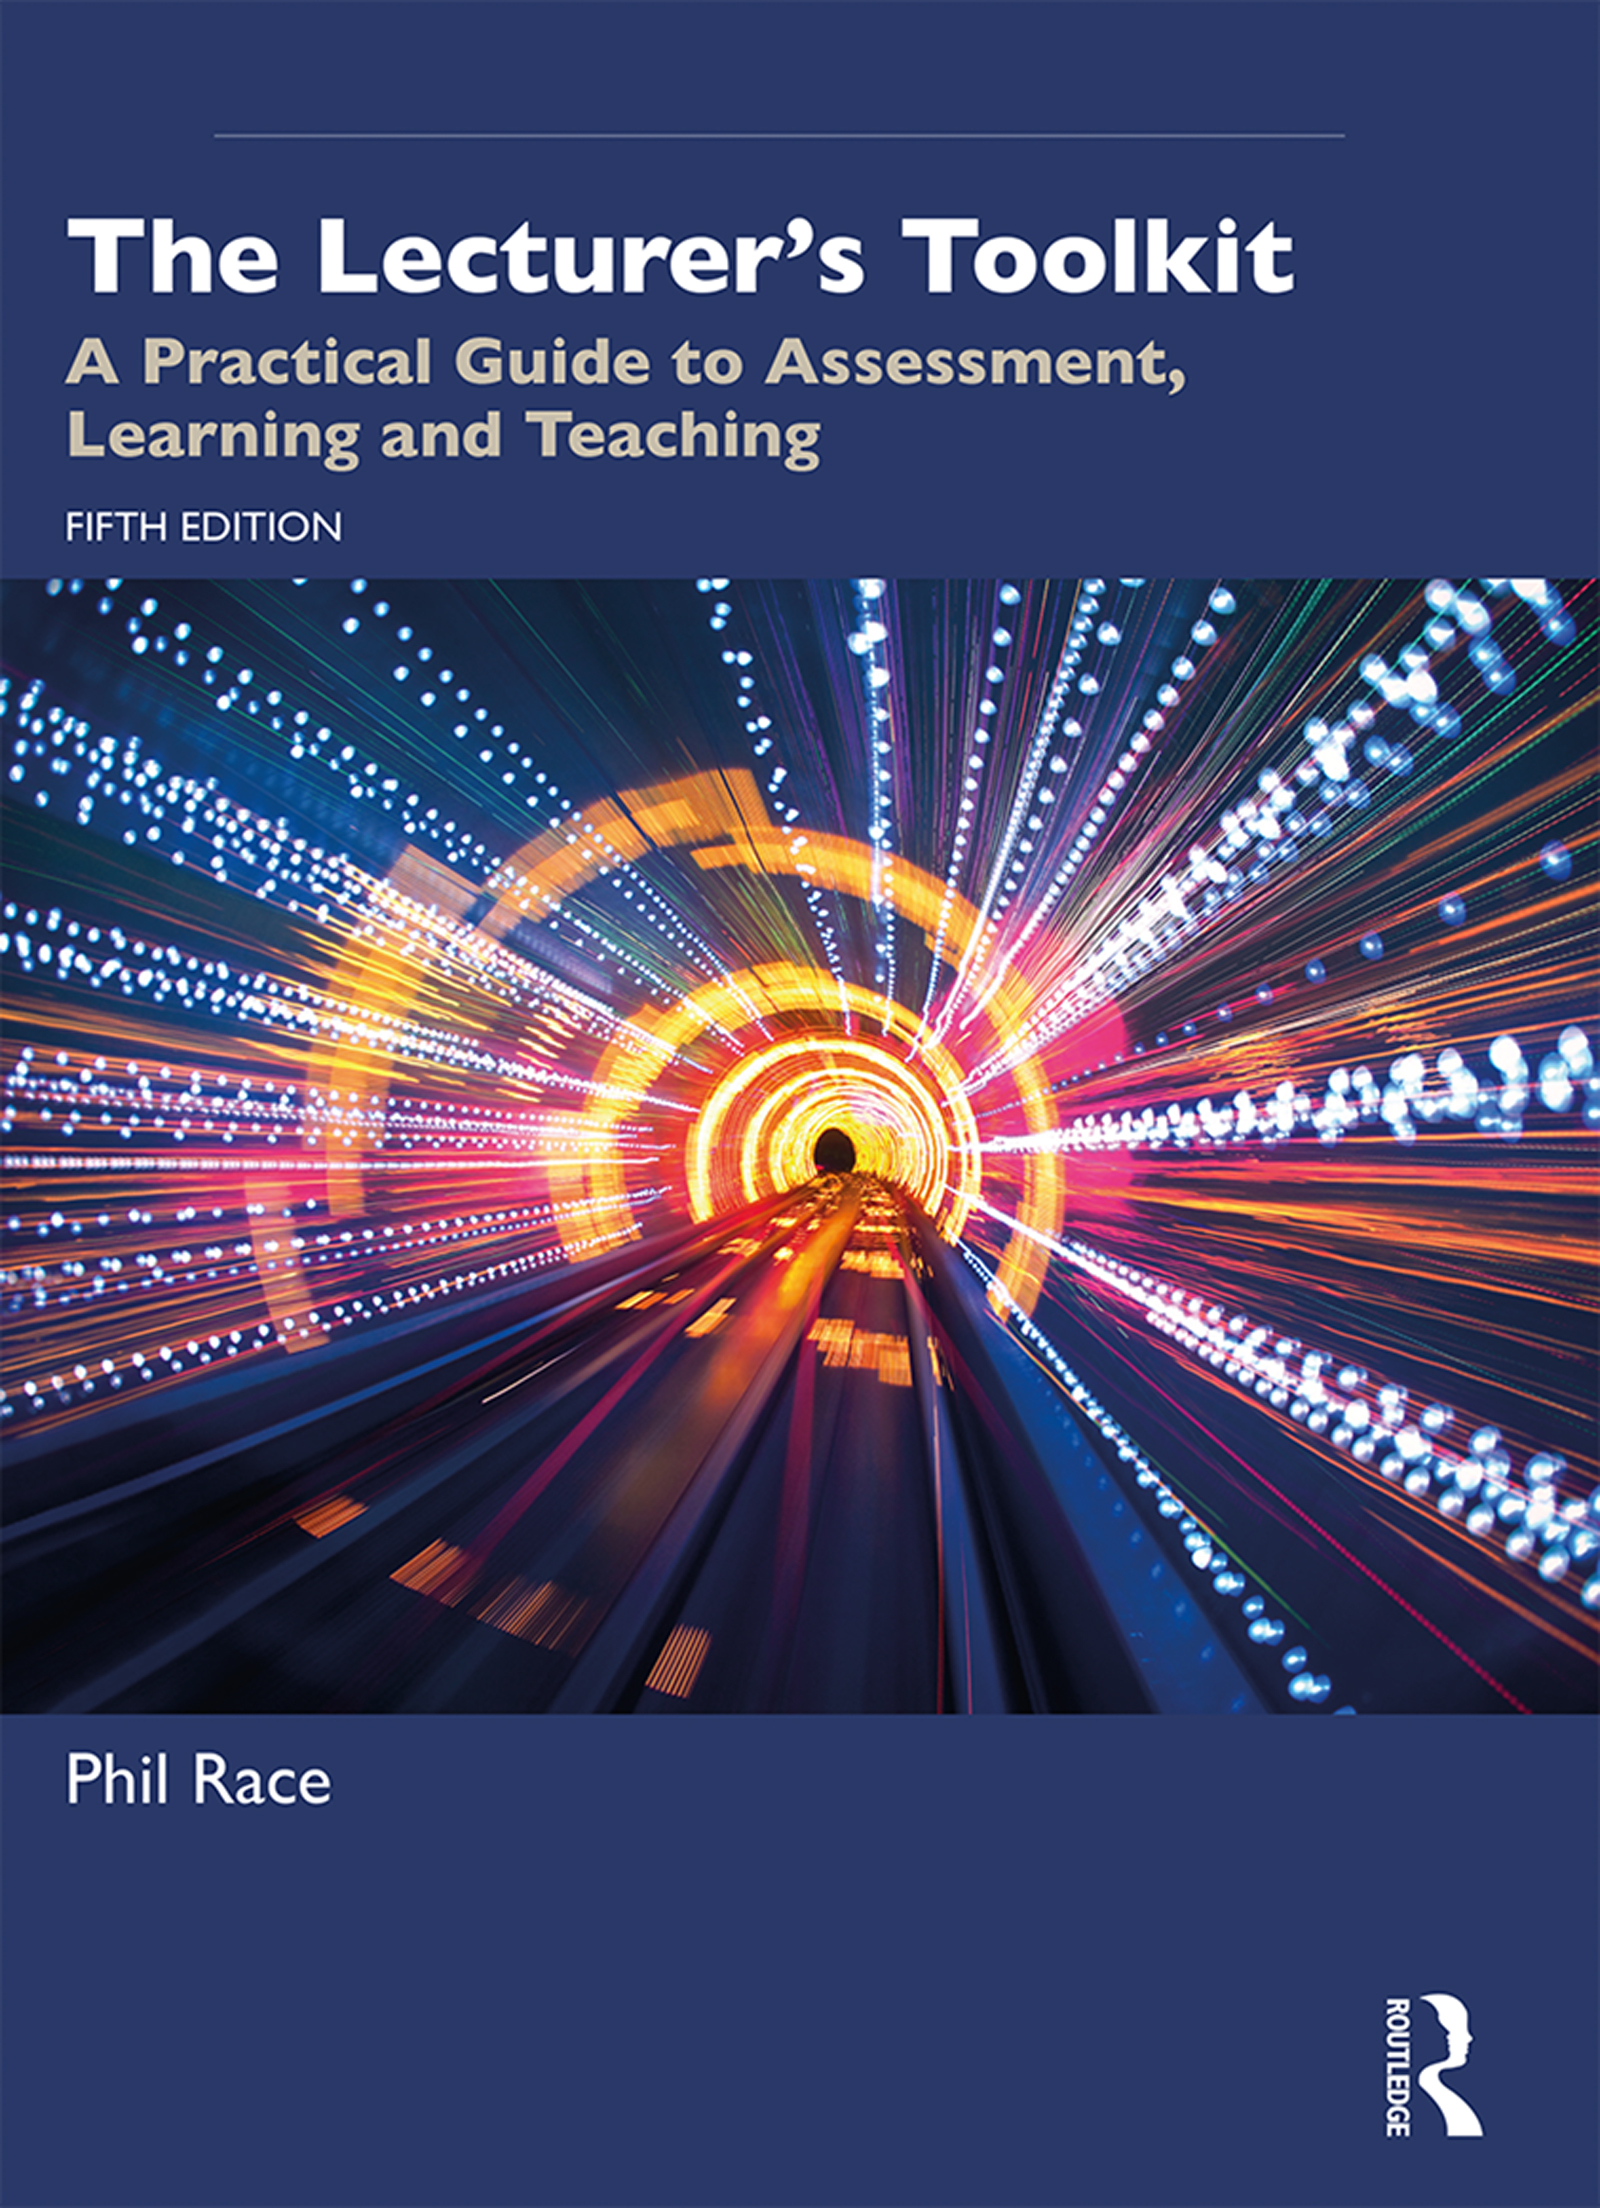 The Lecturer's Toolkit: A Practical Guide to Assessment, Learning and Teaching book cover